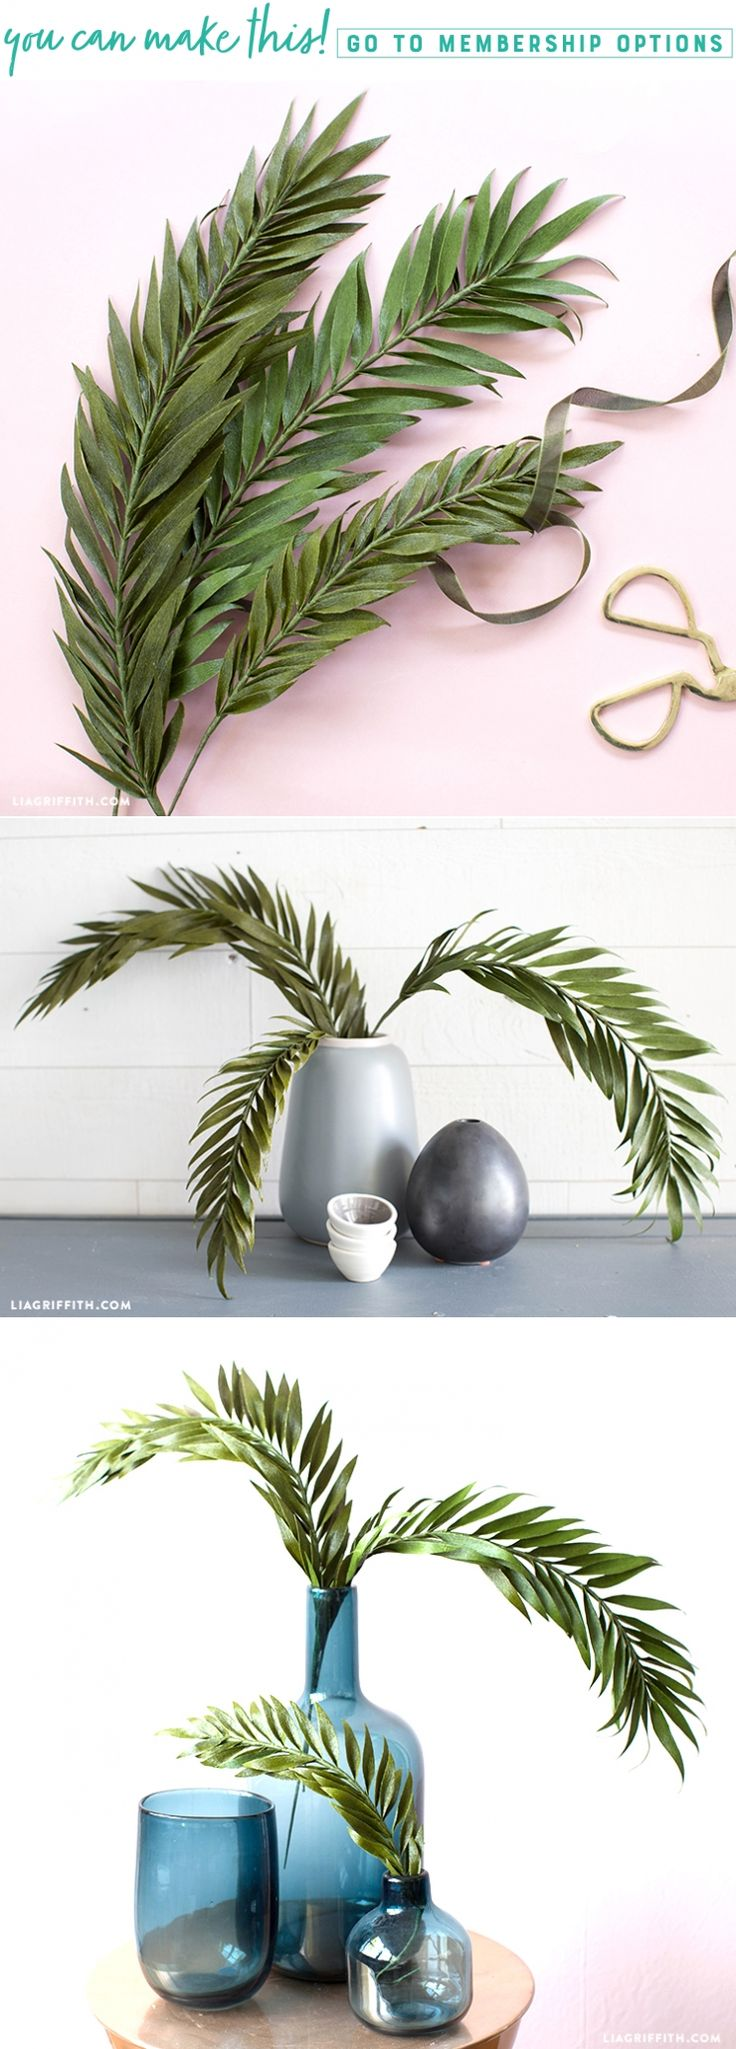 We're Very Frond of You ✨ These crepe paper palm fronds look and feel crazy real! Our Maker, Meagan has just discovered a new technique that is changing the paper flower game. We'll share it with you in this project so you can take your crafts to the next level https://liagriffith.com/crepe-paper-palm-fronds/ * * * #tropical #tropics #tropical #crepepaper #crepepaperrevival #crepepaperflowers #leaves #palm #green #diy #diyidea #diyideas #diyinspiration #diycraft #diycrafts #paper #papercut…